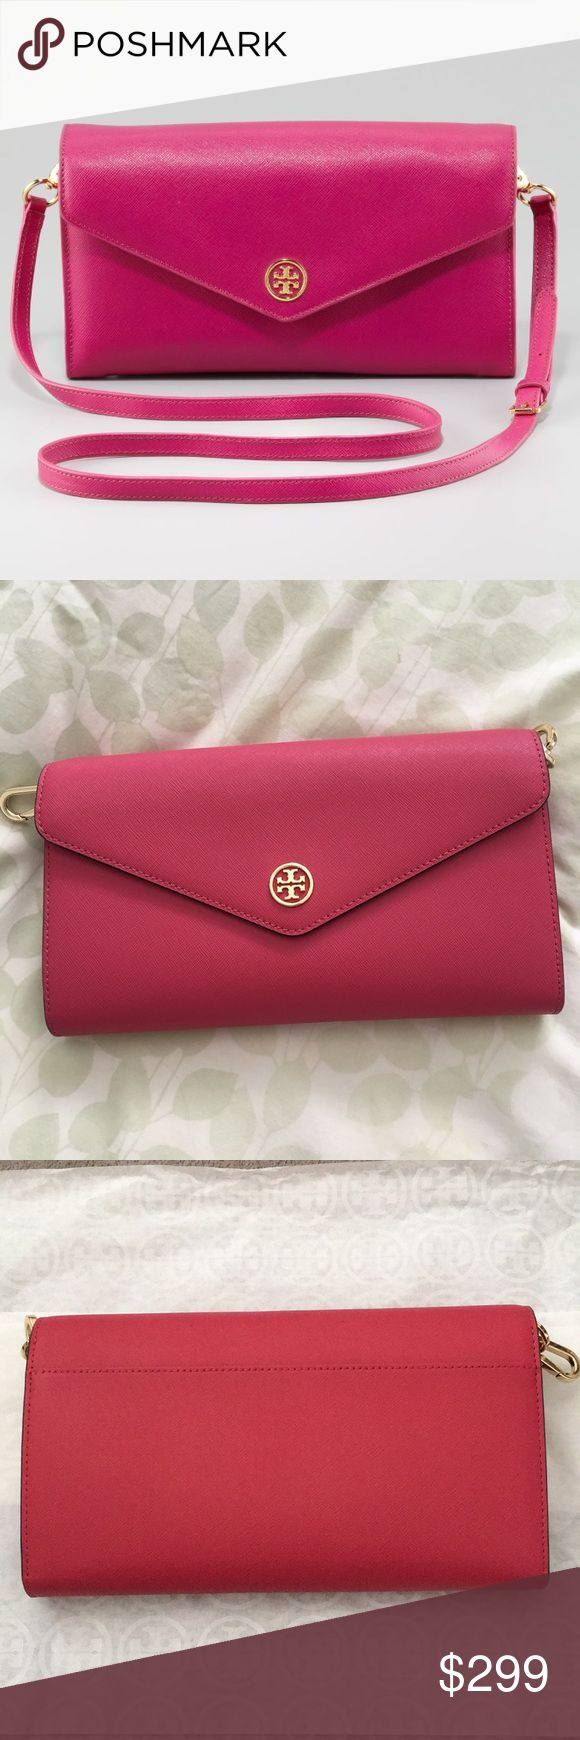 """🆕 Tory Burch Robinson Expandable Concierge Wallet BRAND NEW W/ TAGS. Tory Burch Robinson styled Expandable Concierge Wallet in Dark Peony color (dark hot pink). Makes the perfect shoulder bag, crossbody bag, clutch and/or large Wallet. Envelope snap closure with 2 snap options. Exterior signature TB gold plated hardware and exterior pocket. Removable and adjustable crossbody strap. Approx size of strap: 21"""" - 1/2"""" Drop.  Interior lined in TB signature fabric. 4 open sections, 1 zip pocket…"""